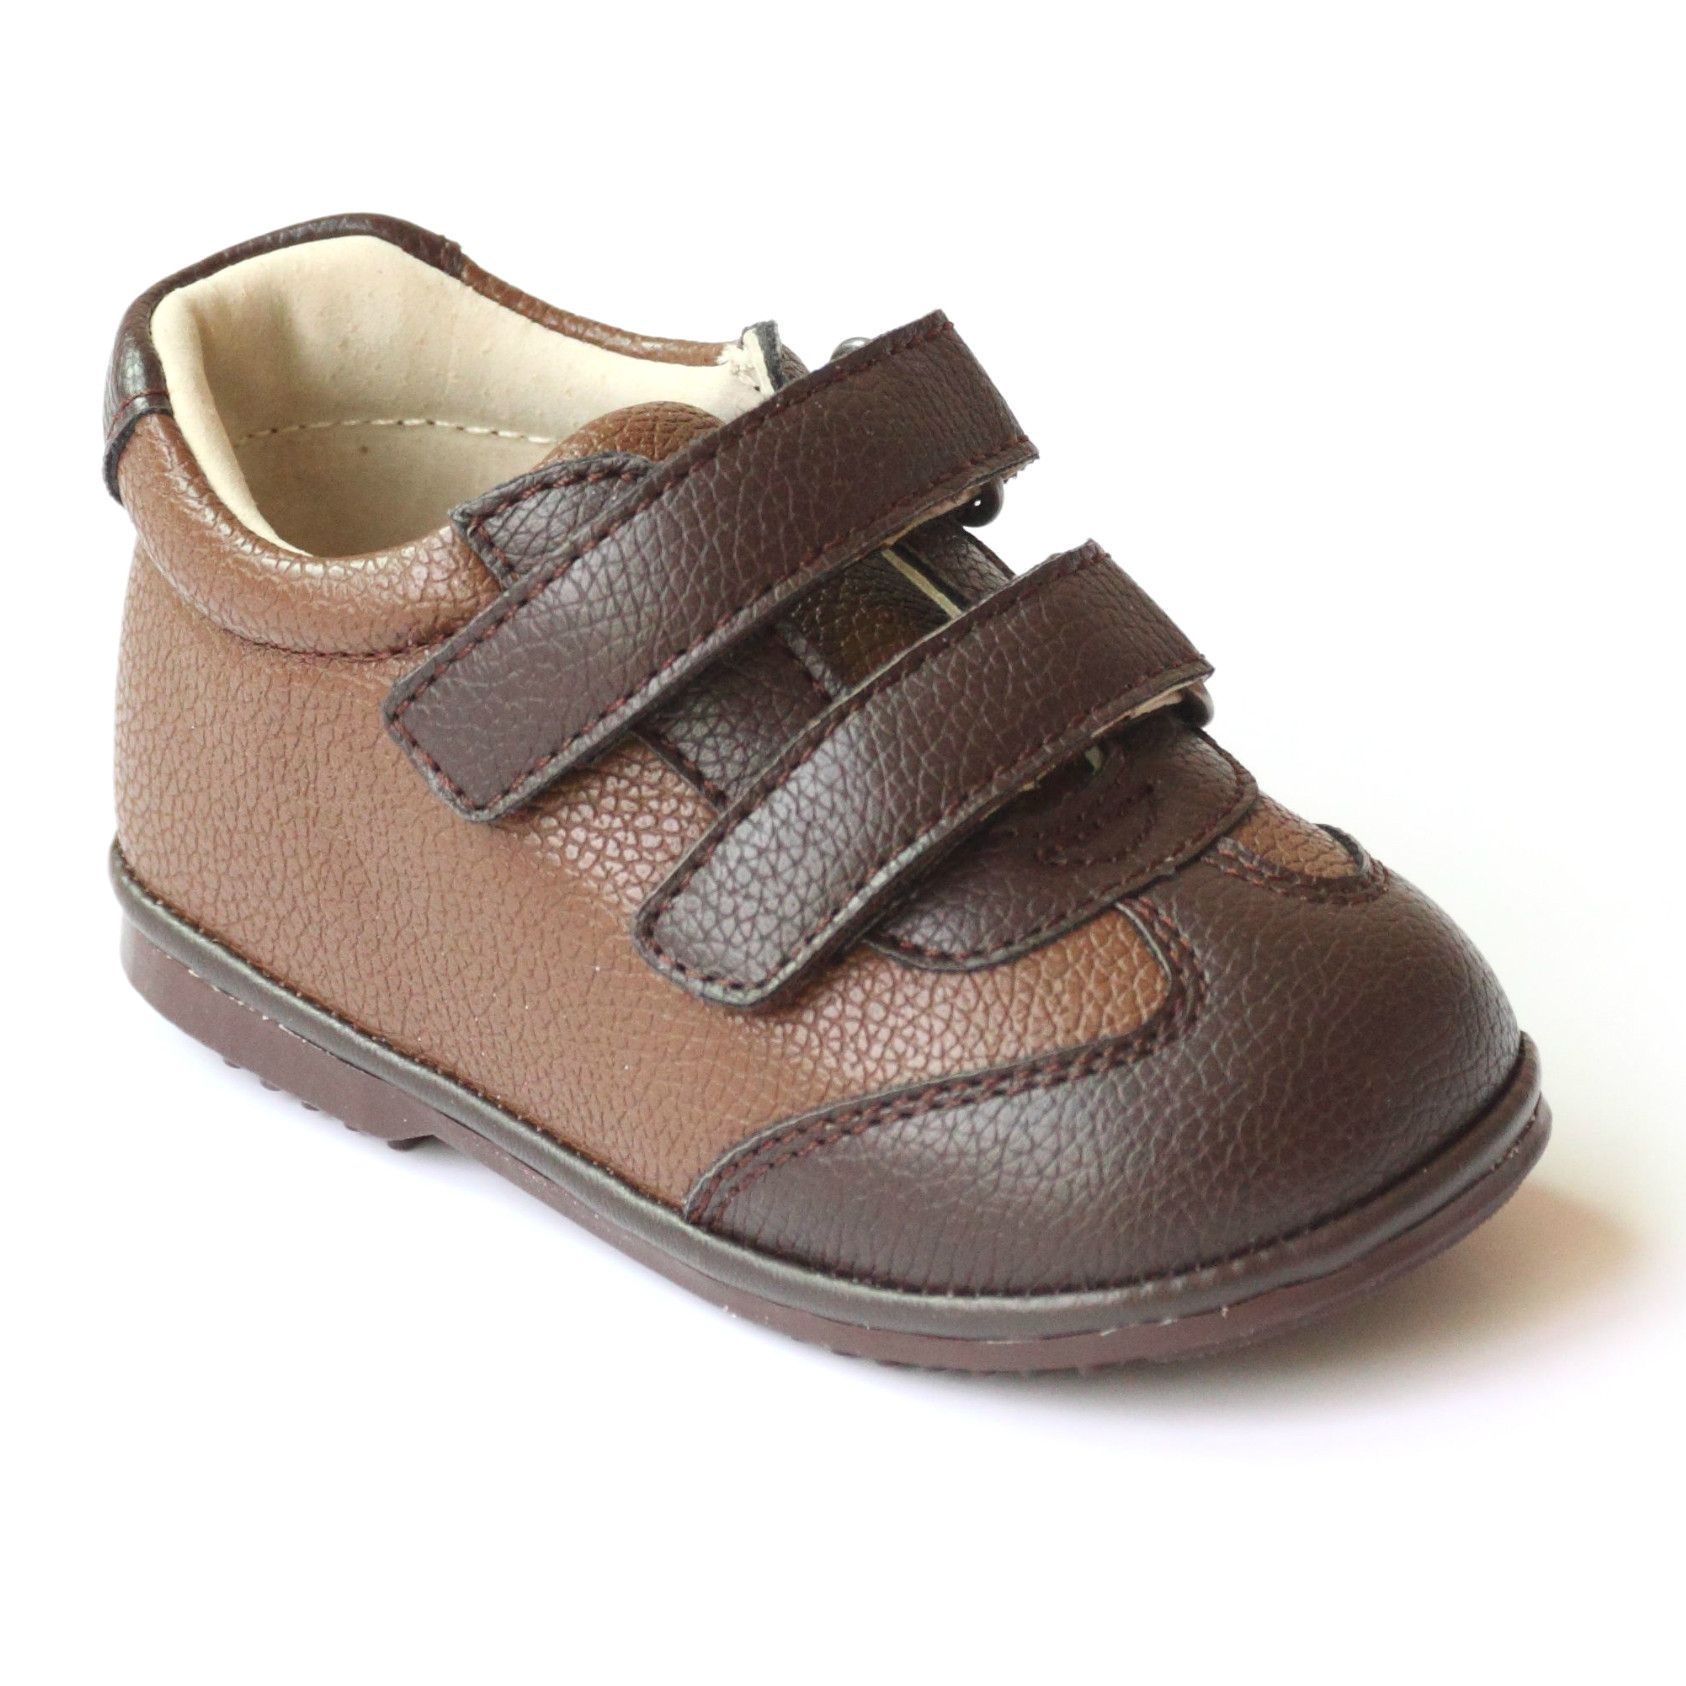 Angel Baby Boys Leather Double Strap Sneakers